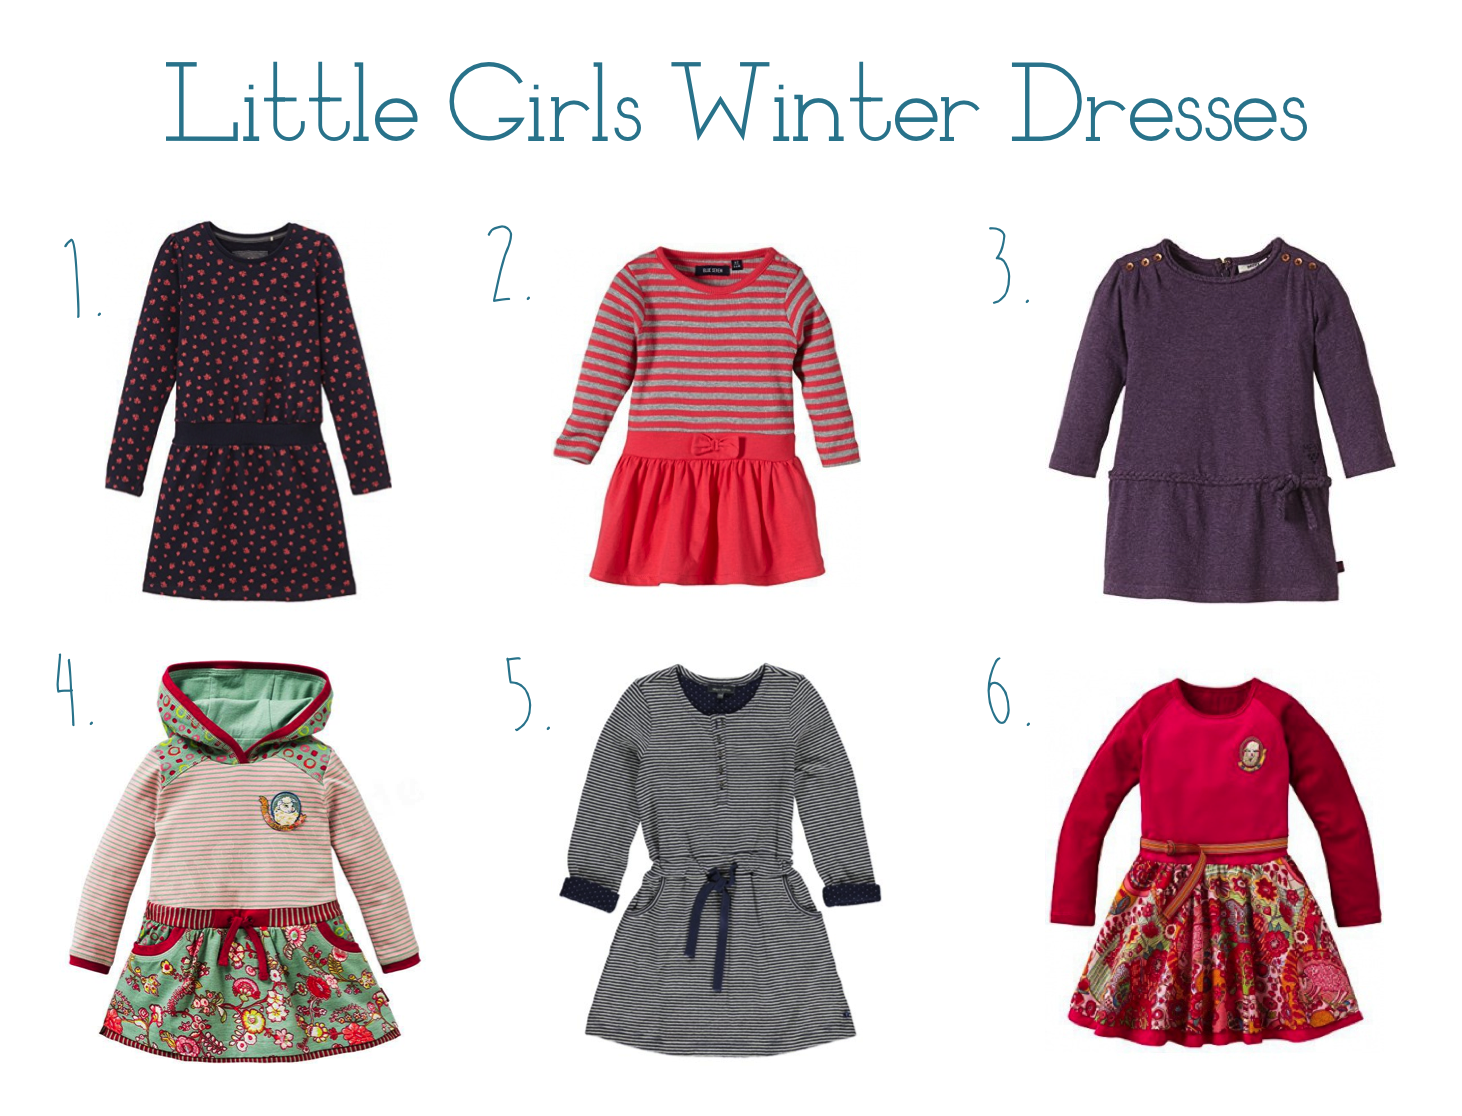 66df04052 And since my girls are growing like sprouts, I figured a few extra winter  dresses couldn't go amiss. Here are my favorites at the moment: